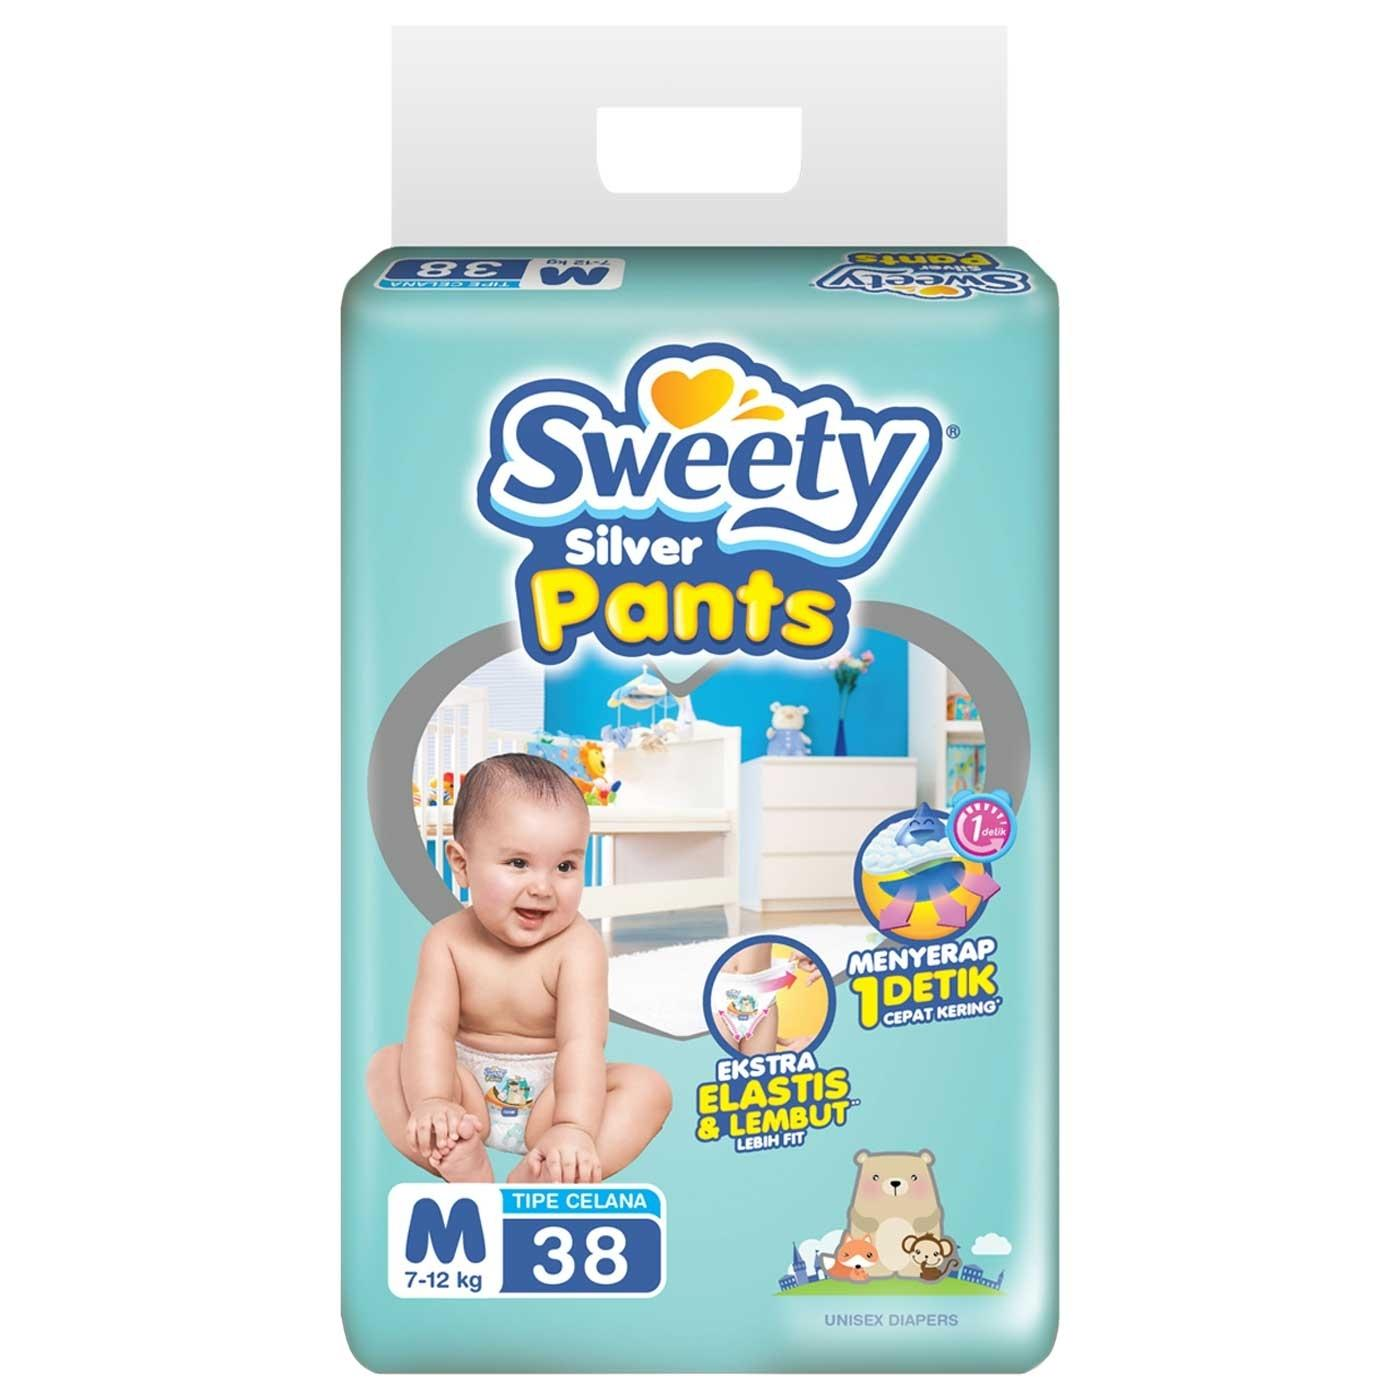 Spesifikasi Sweety Diapers Silver Pants M 38